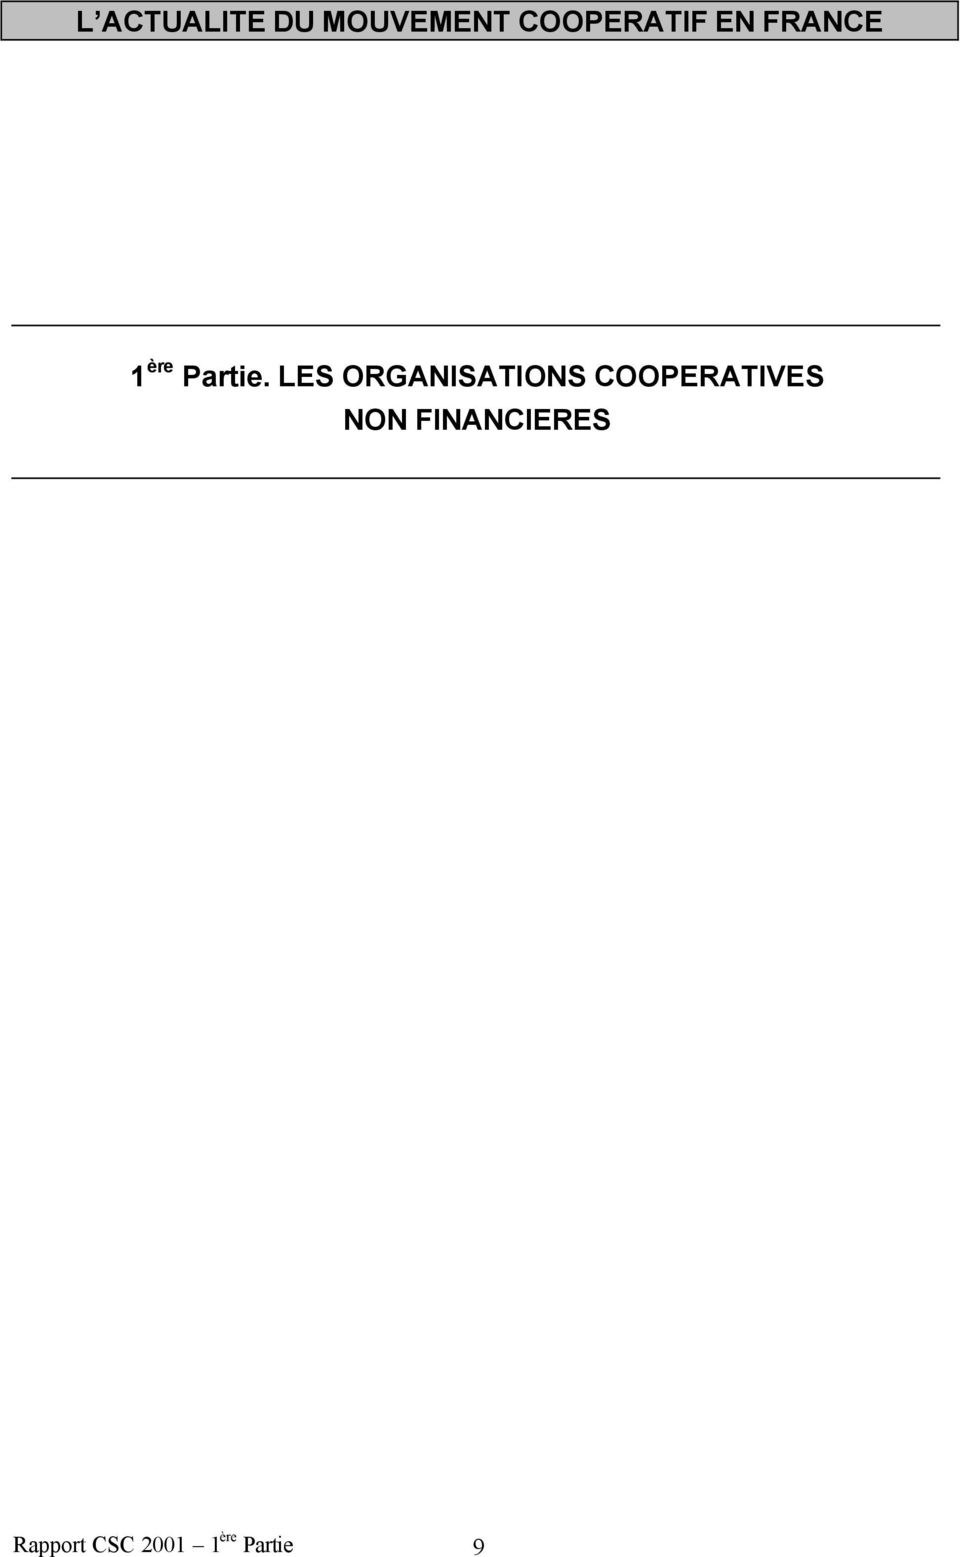 LES ORGANISATIONS COOPERATIVES NON